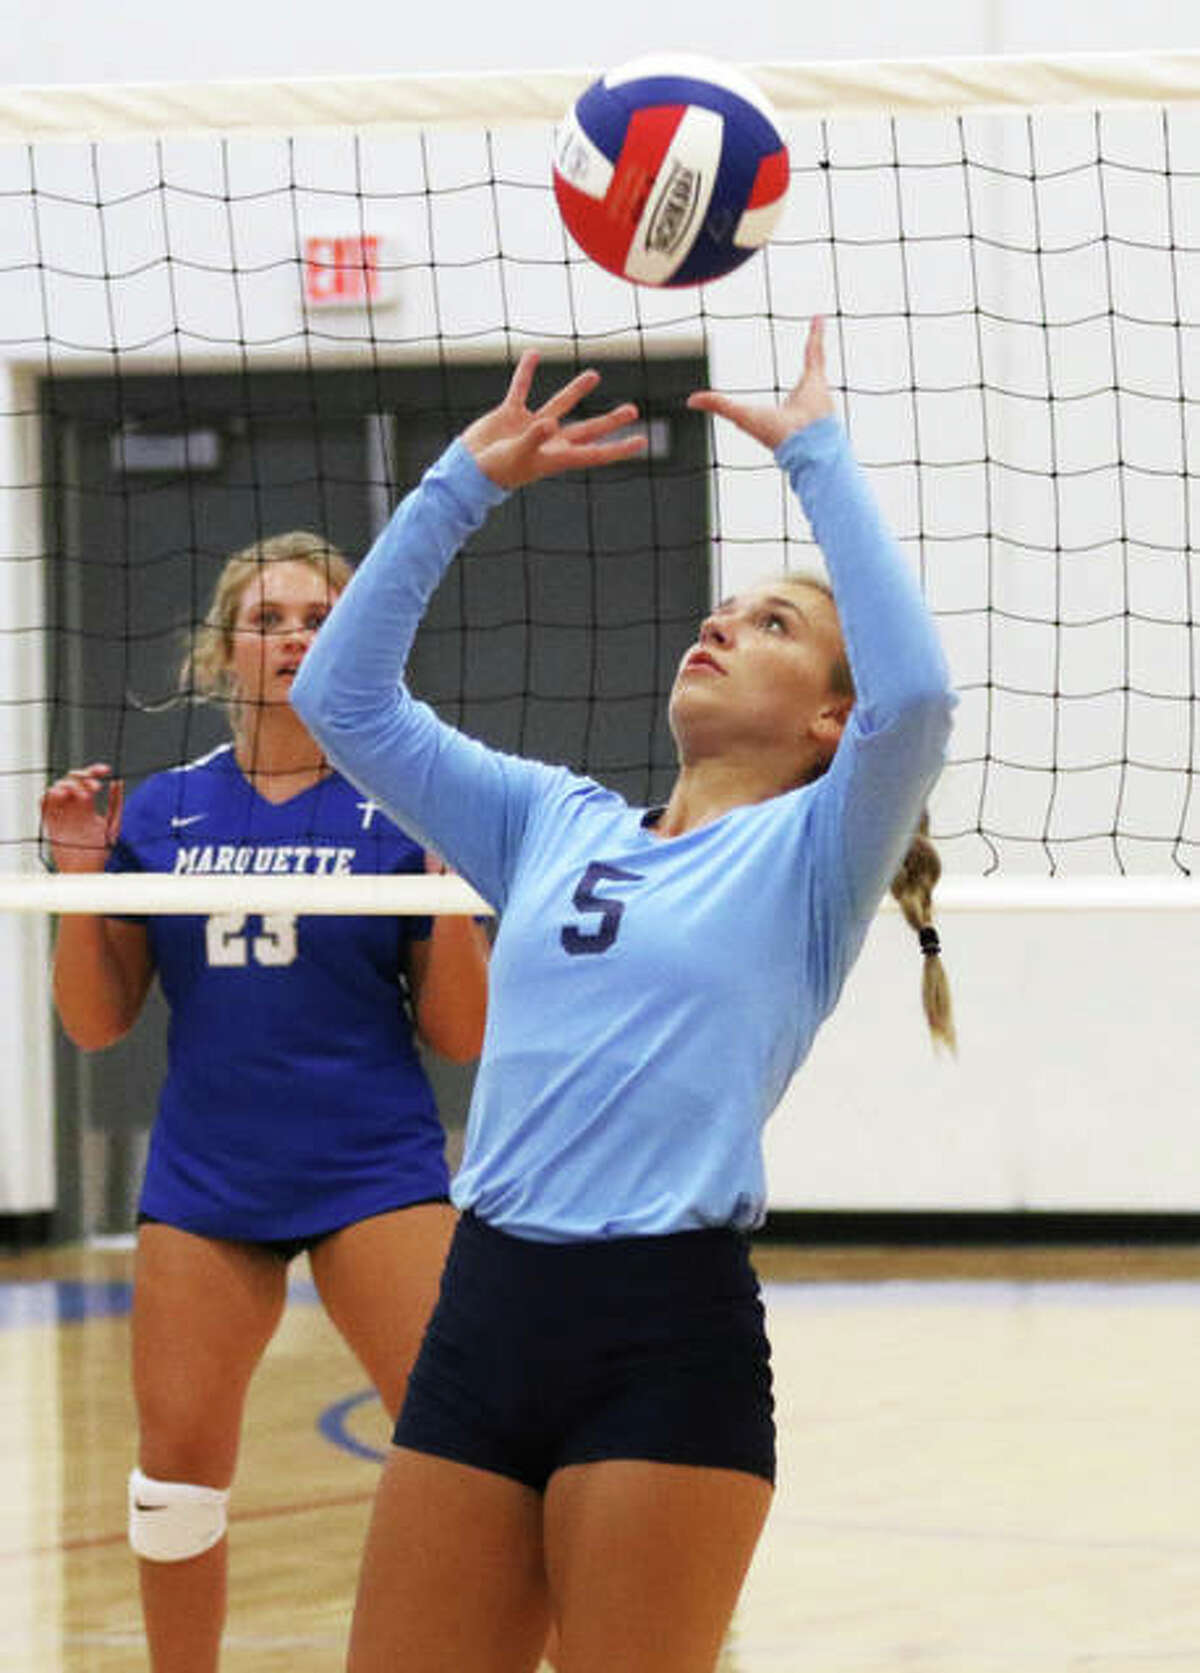 Jersey junior Clare Breden, one of two returning setters in the Panthers 6-2 offense, sets during a match against Marquette on Monday at Roxana.